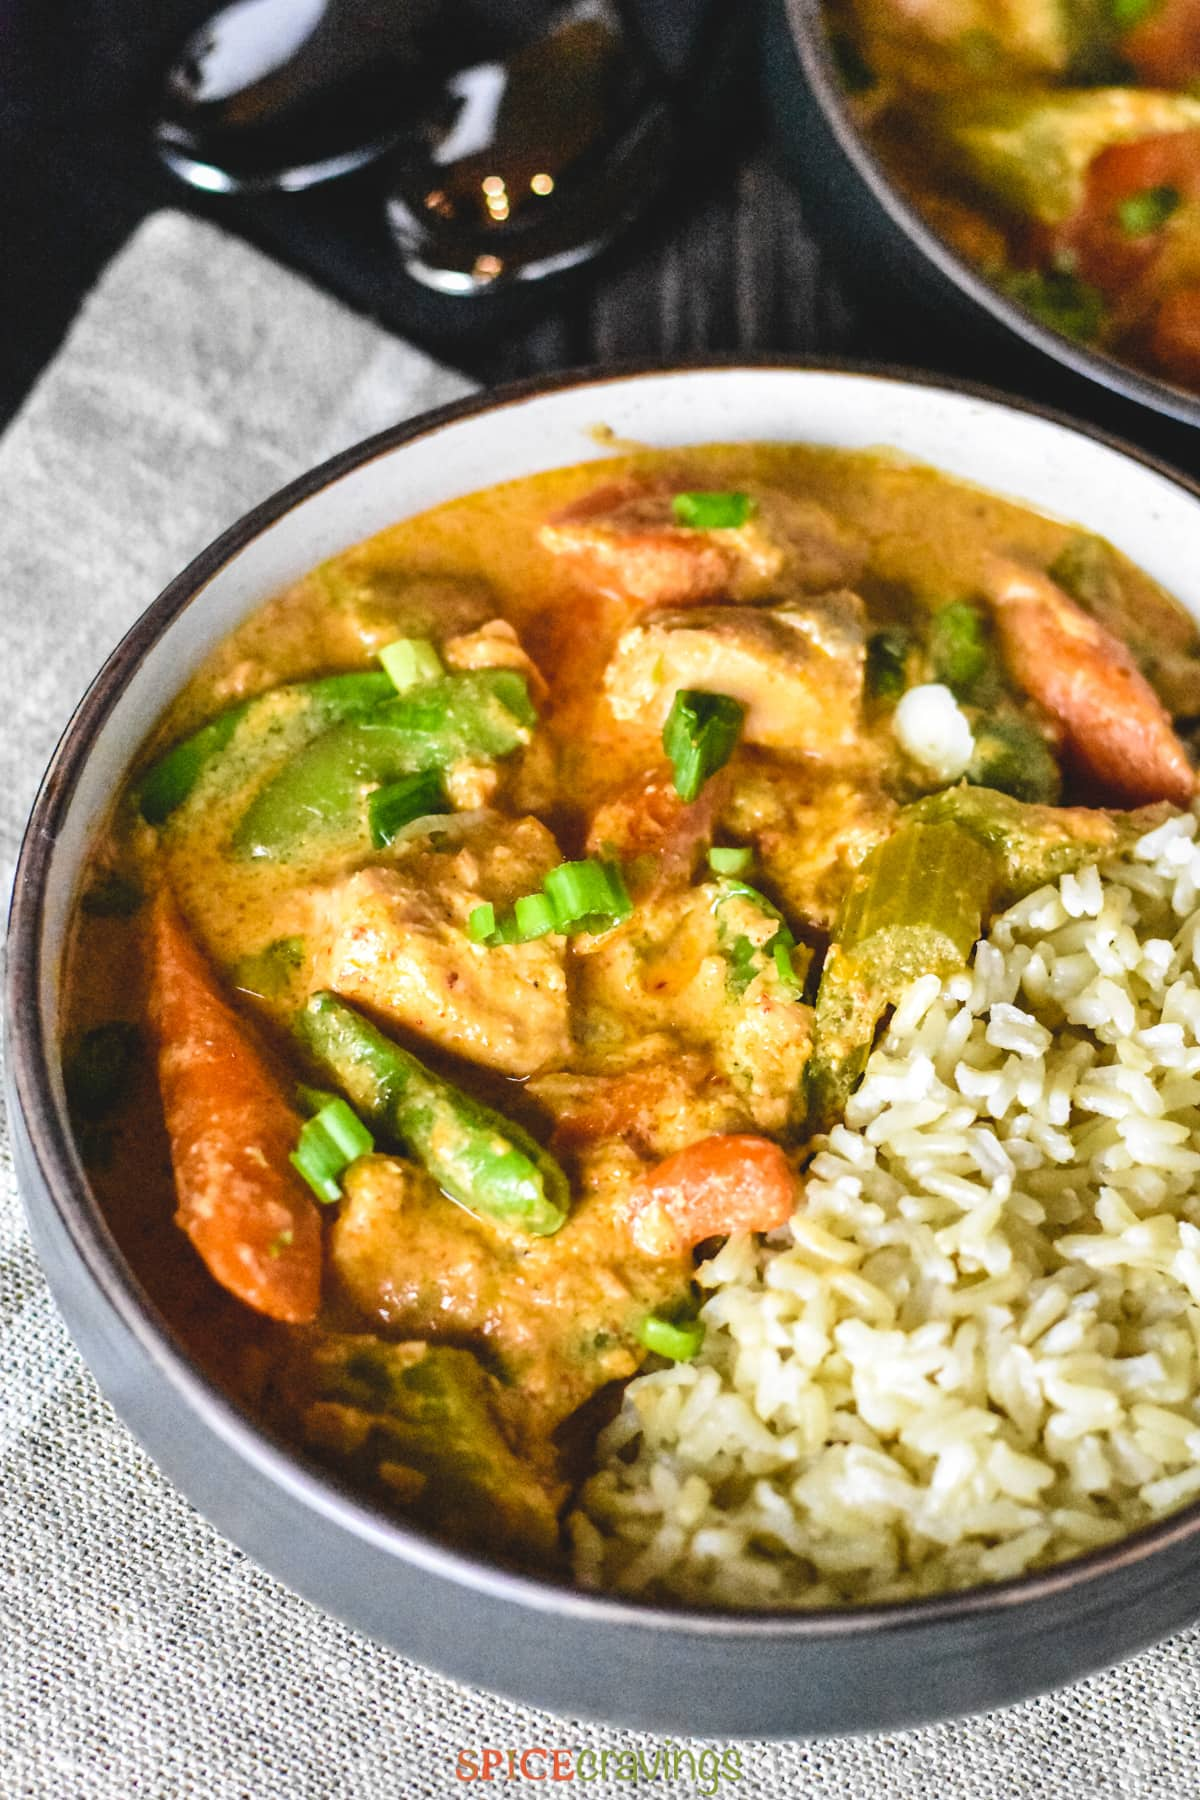 Tender Salmon cooked in coconut milk and red curry paste with crunchy vegetables like celery, carrots and snap peas, and served with brown jasmine rice